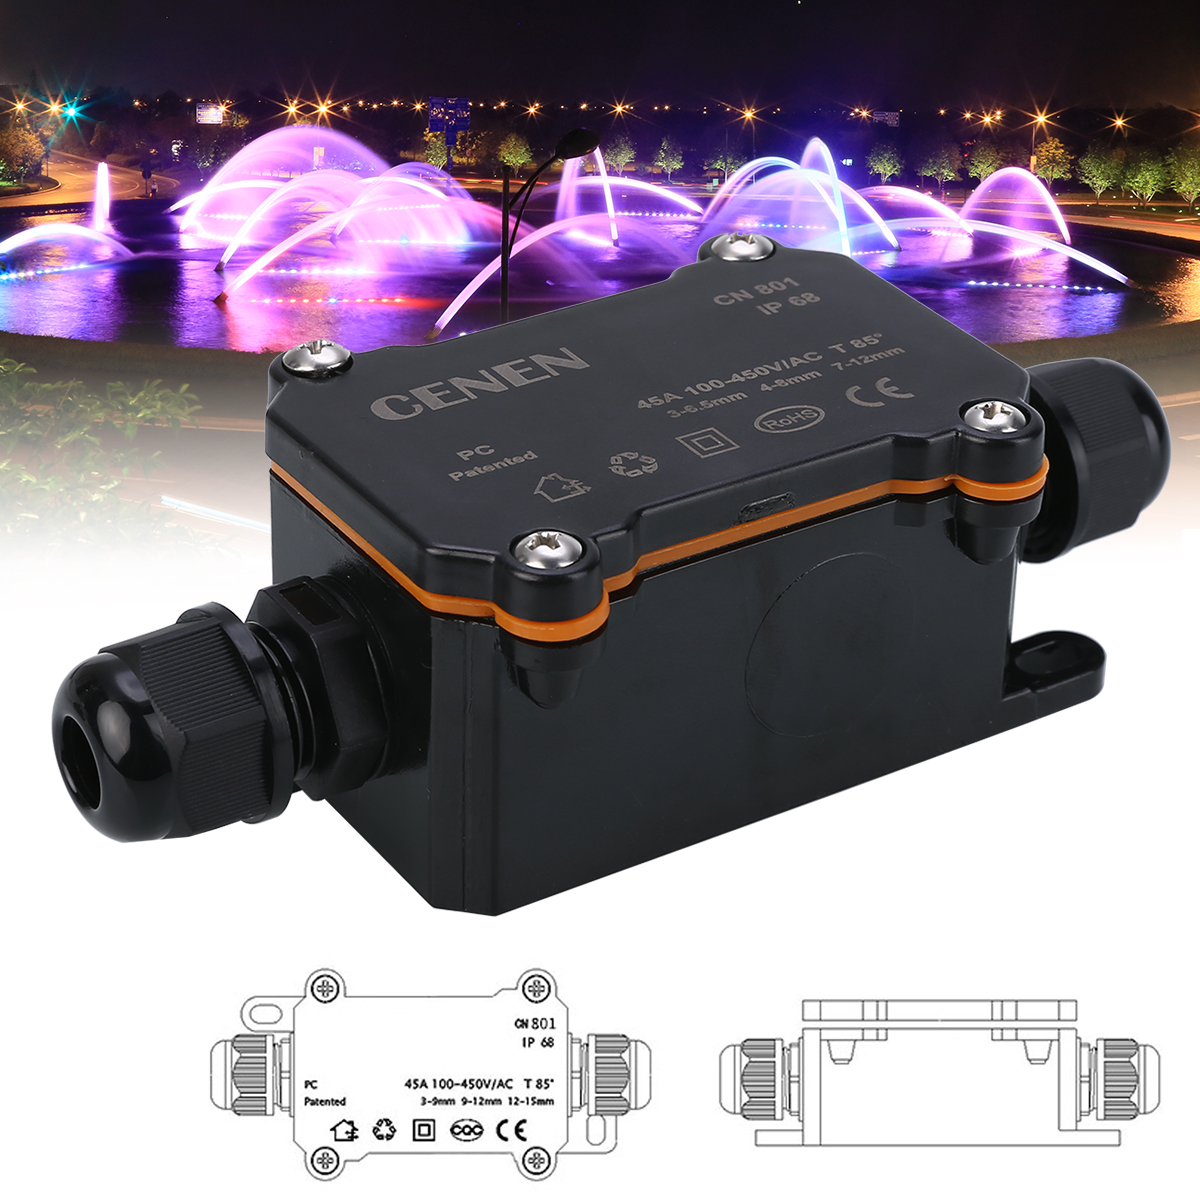 2 Way Outdoor Waterproof IP68 Electrical Cable Wire Connector Junction Box For Low/High Voltage Garden Light Accessories